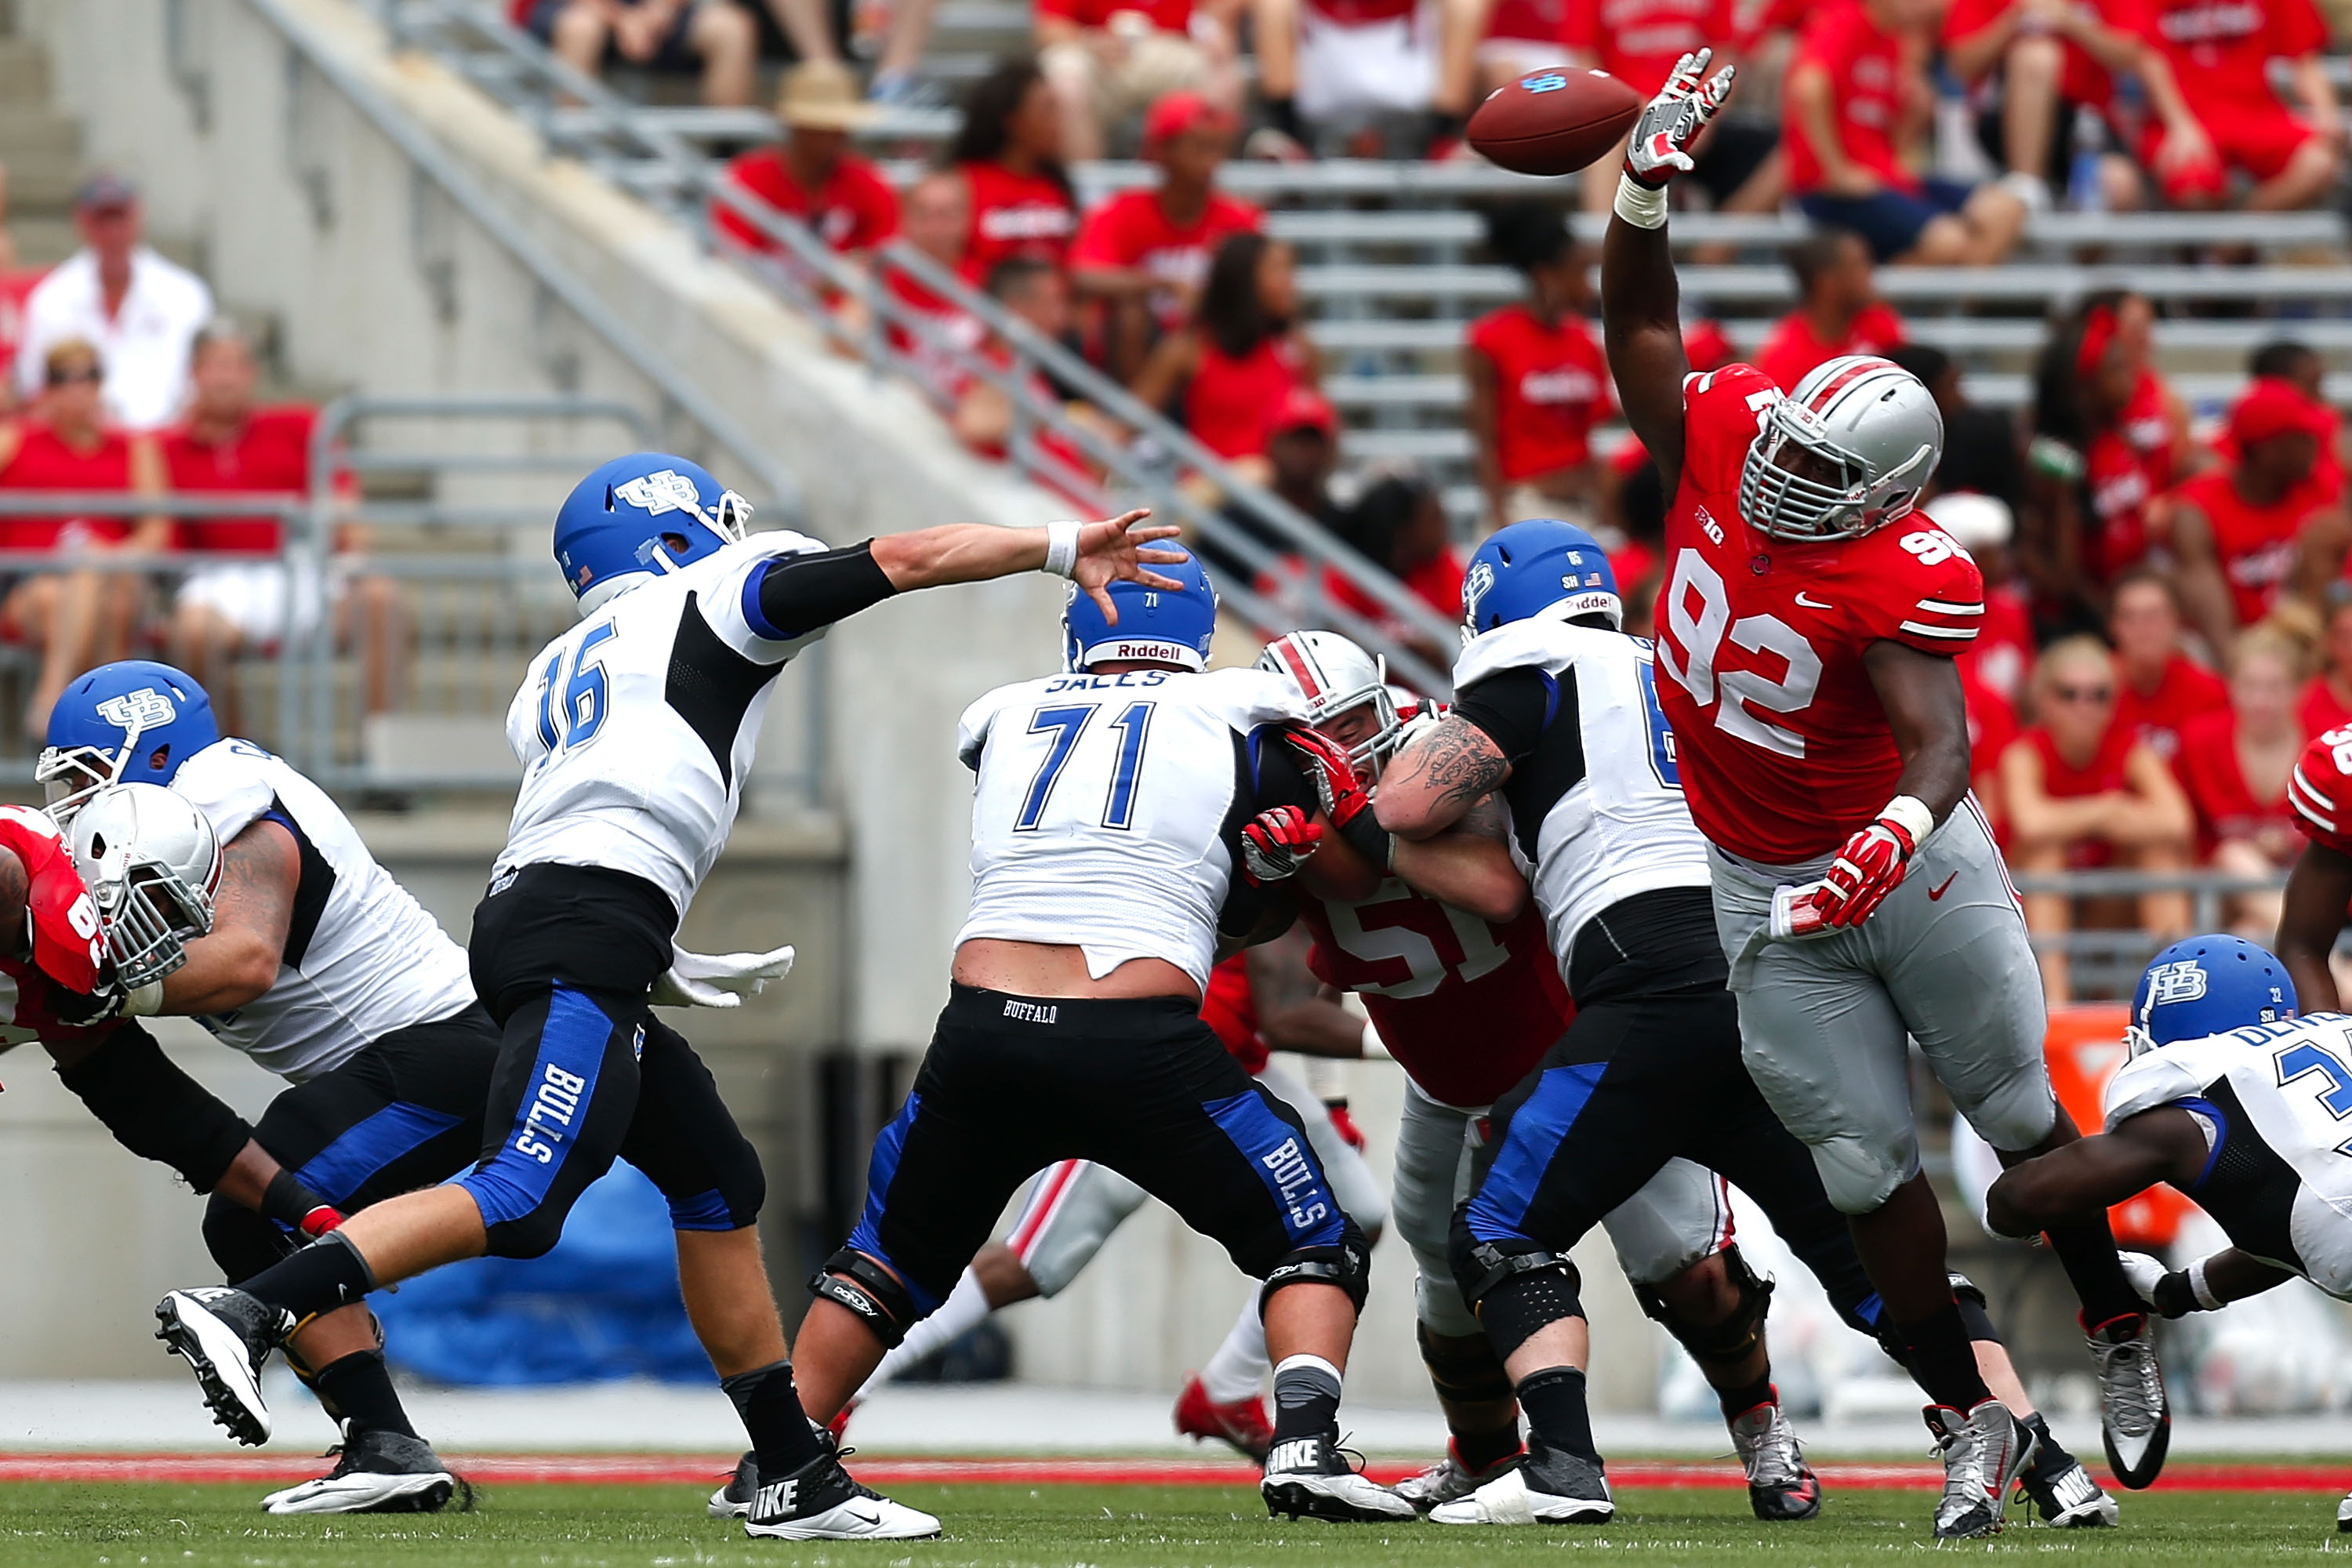 Adolphus Washington of Ohio State charged UB's Joe Licata, but Licata hit Alex Neutz for a touchdown on the play during the teams' 2013 matchup. (Getty Images)